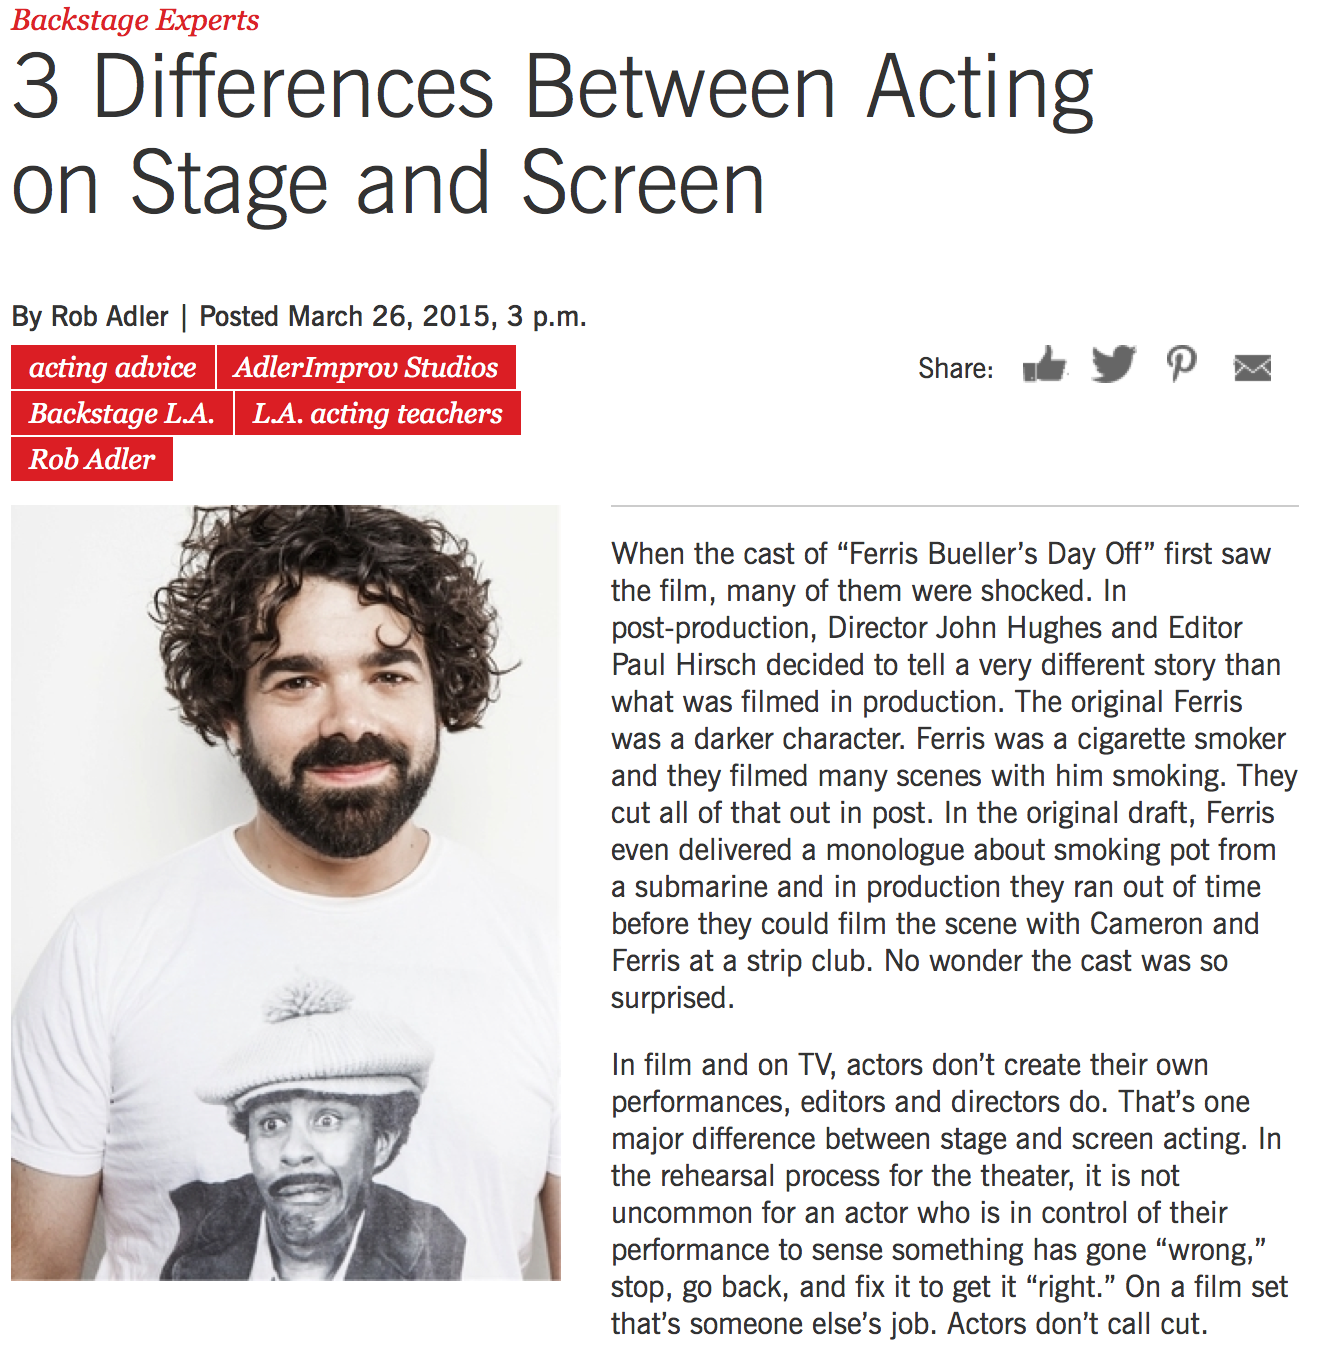 Stage vs. Screen